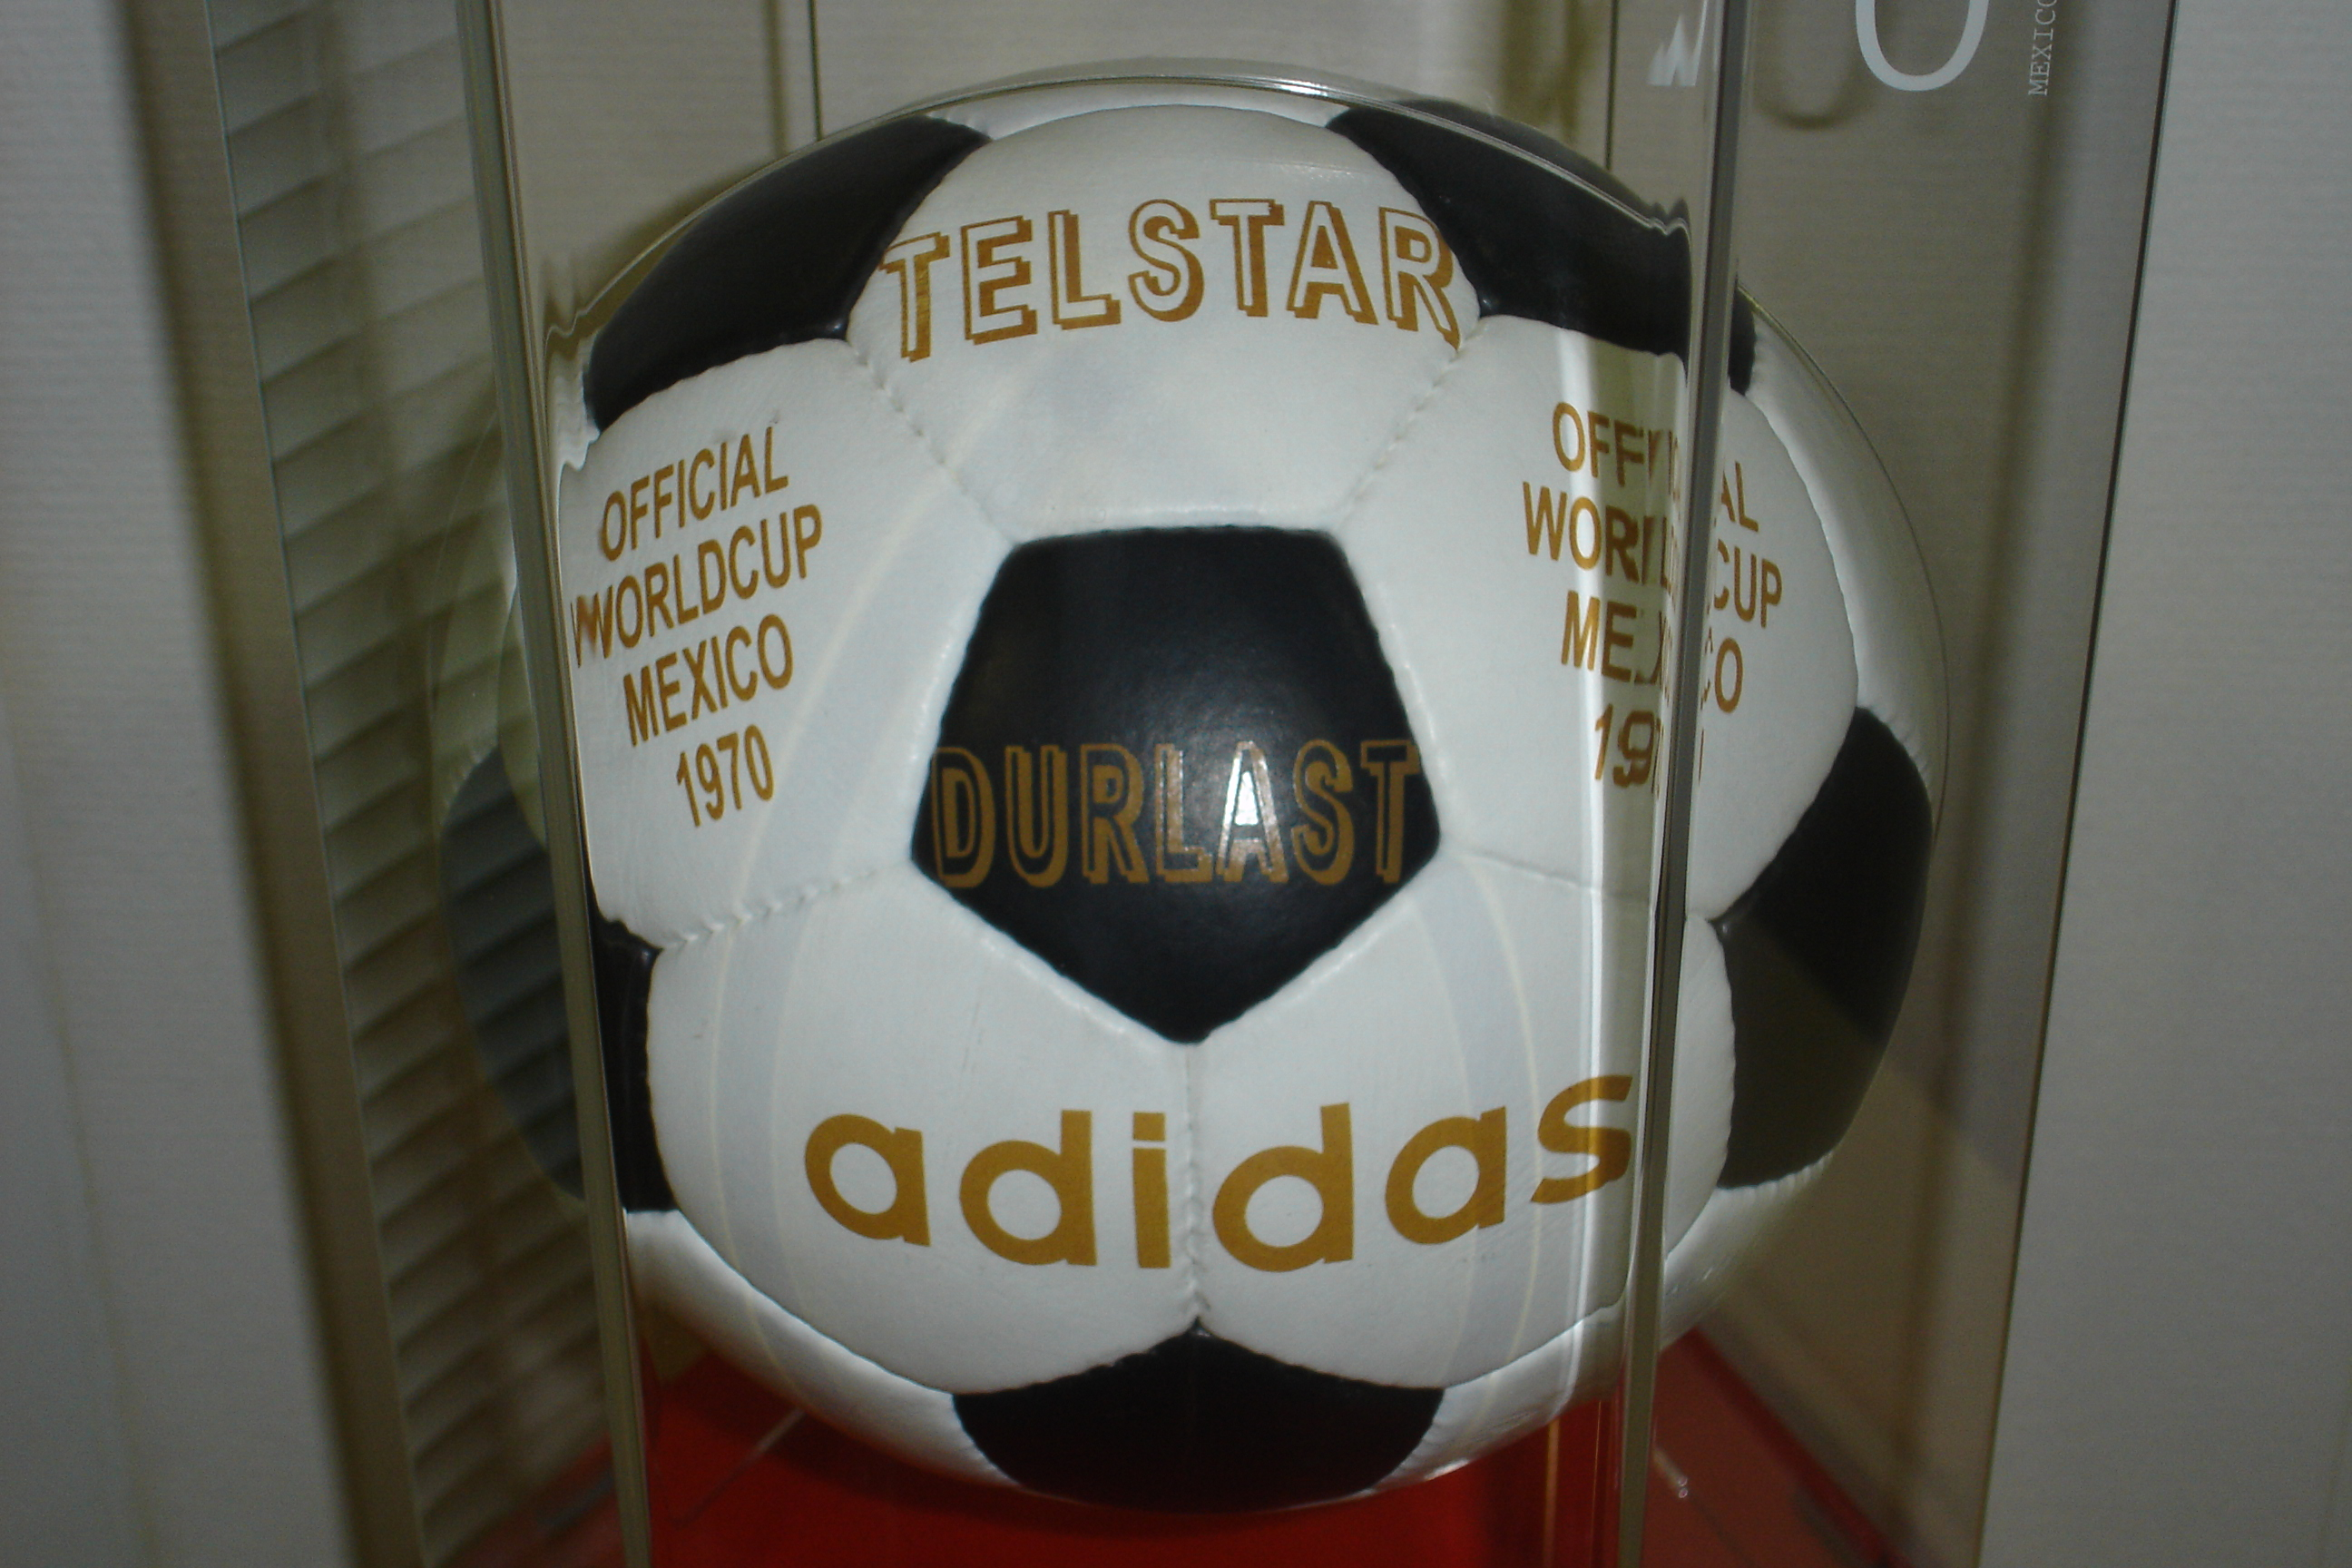 reputable site a243c ae1a4 File Adidas Telstar Mexico 1970 Official ball.jpg